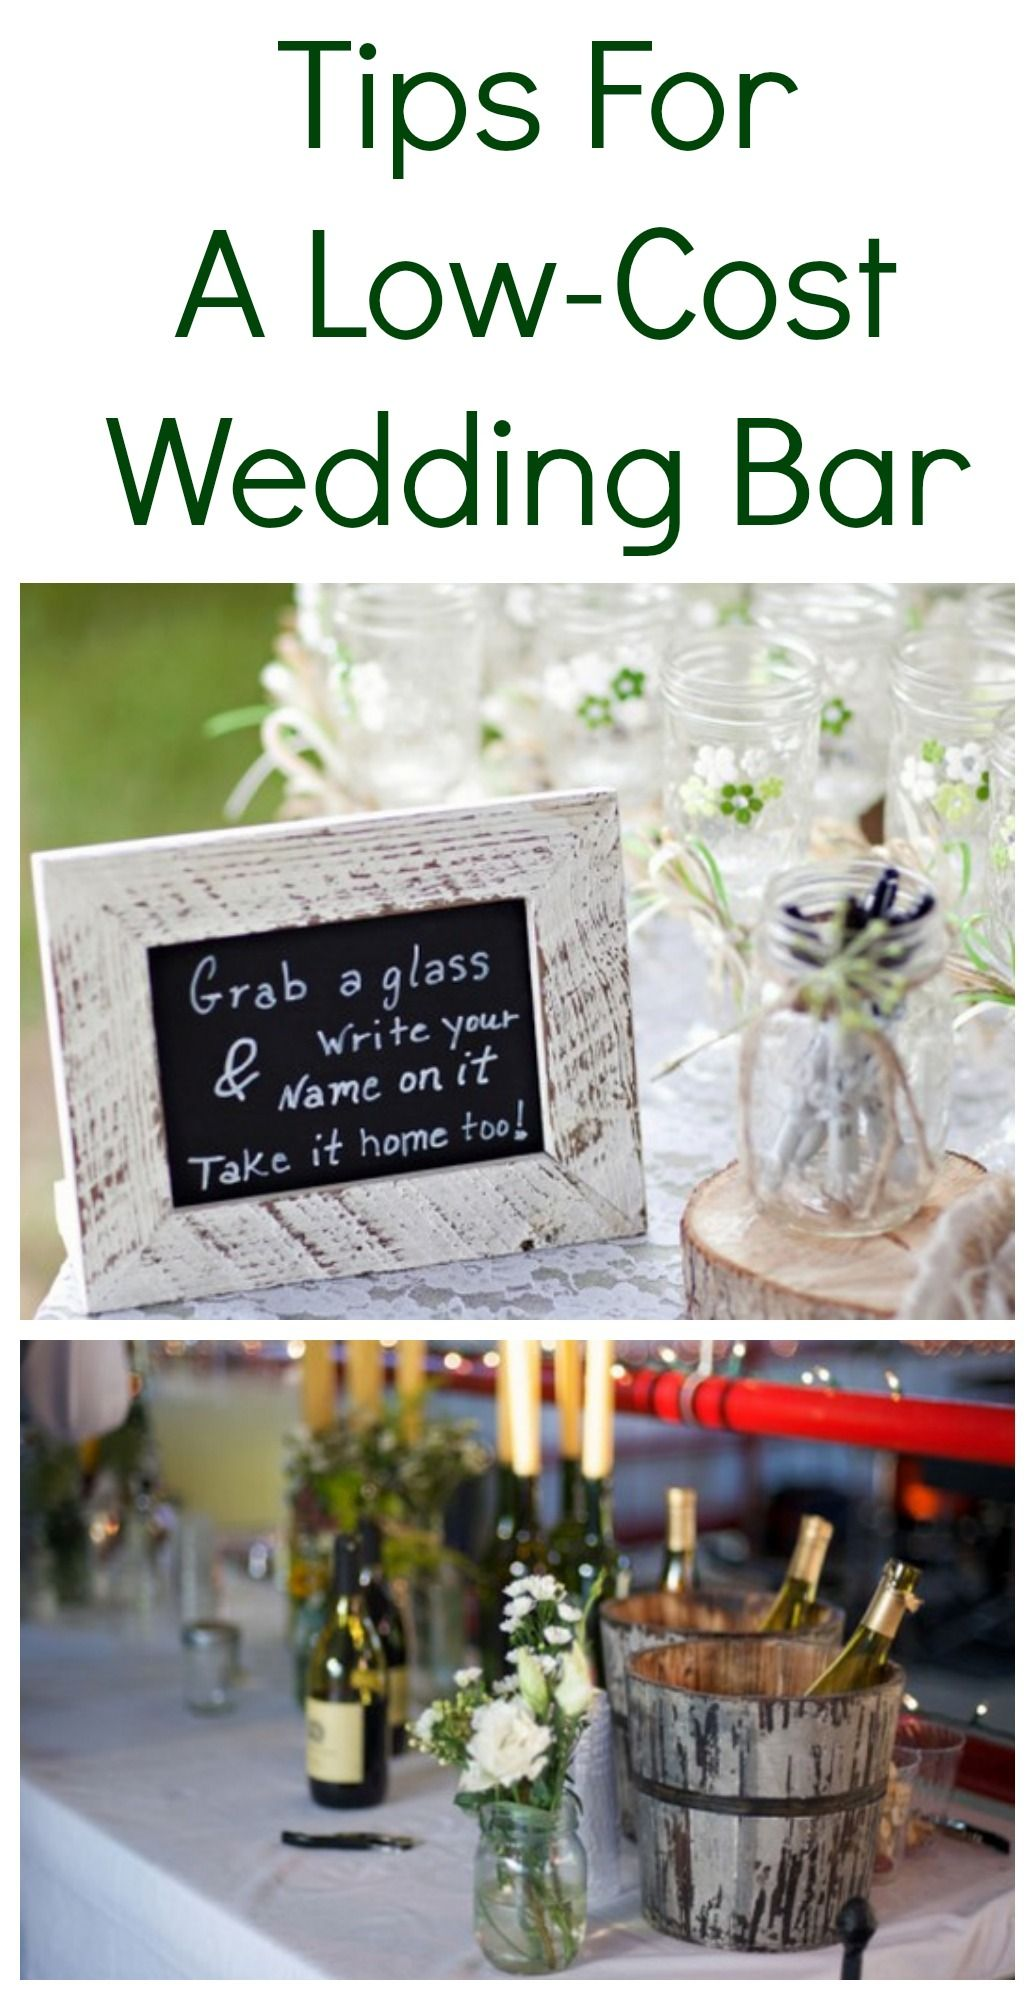 5 Tips for a Low-Cost DIY Wedding Bar | Bloggers' Best ...